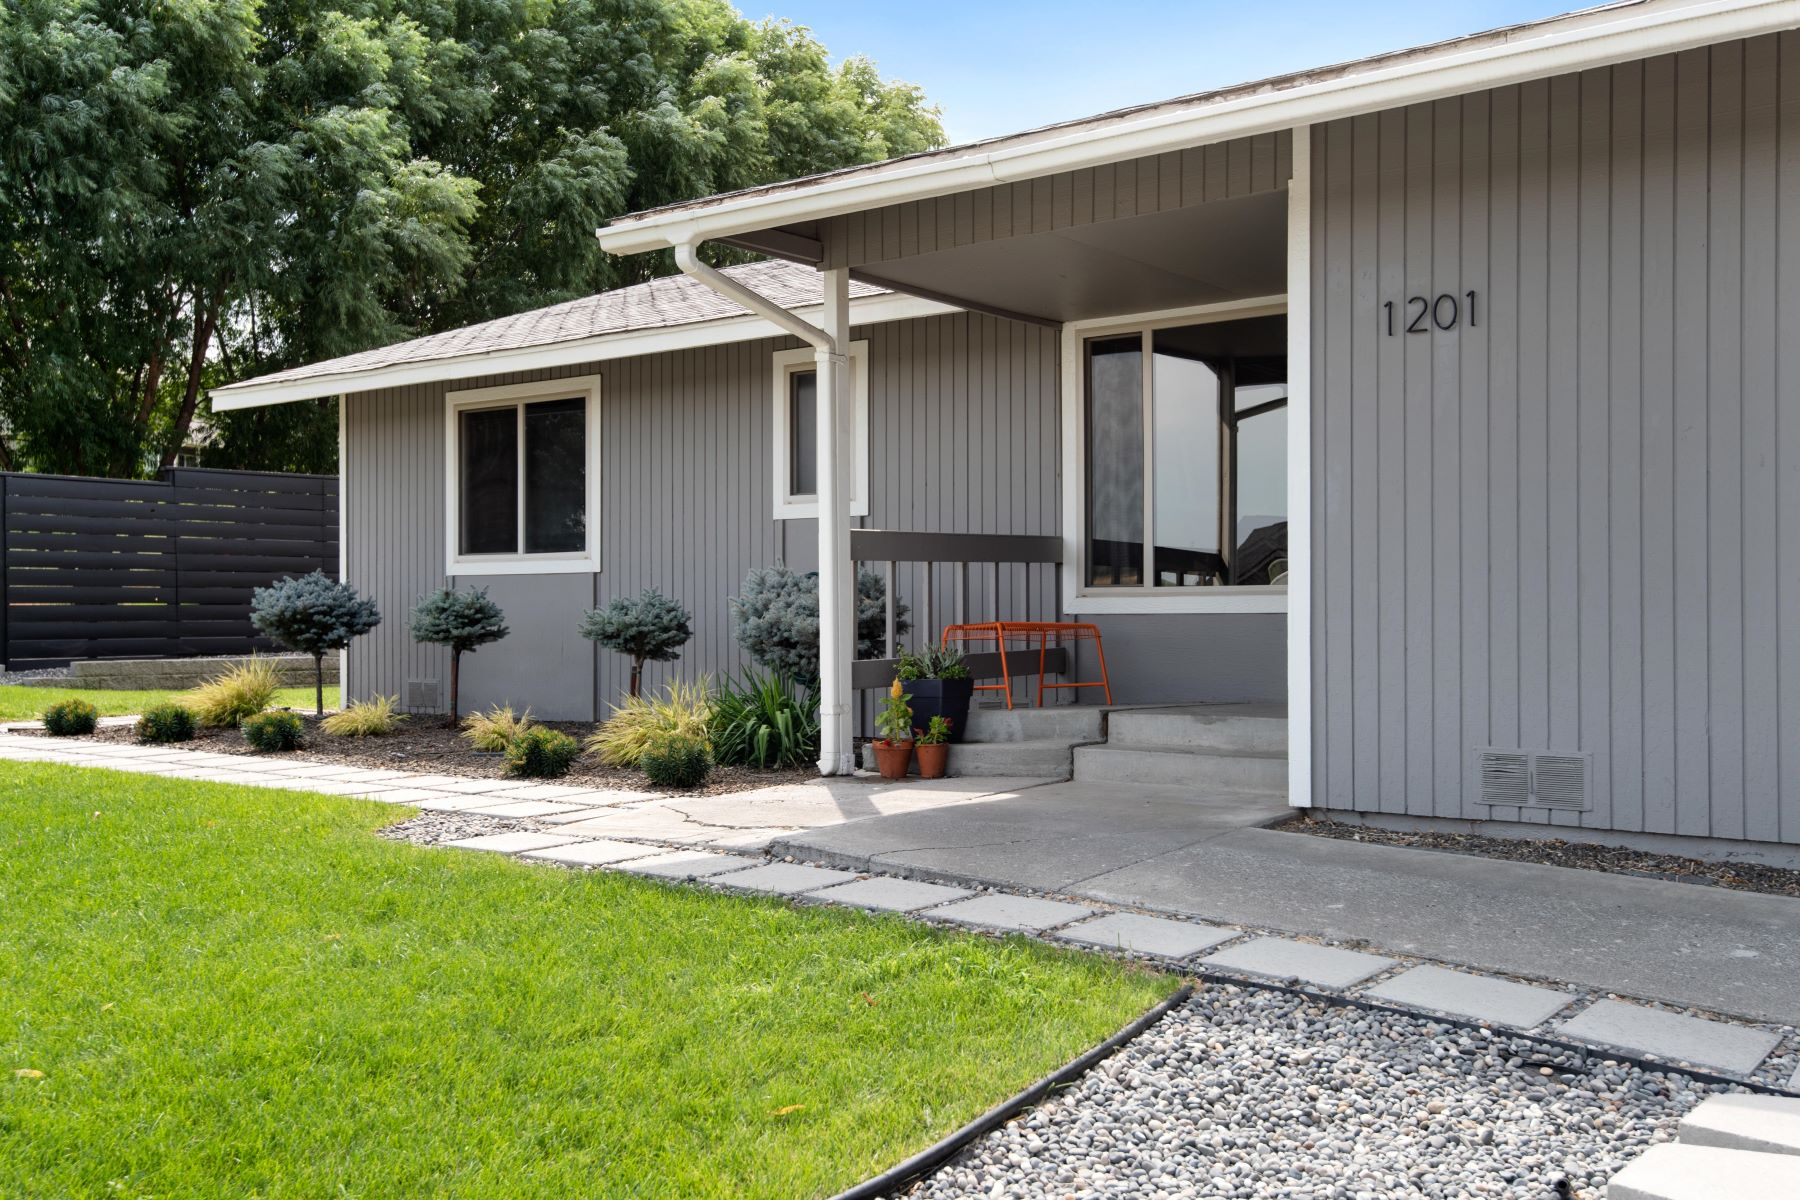 Single Family Homes for Sale at Lots of Updates 1201 W 9th Benton City, Washington 99320 United States